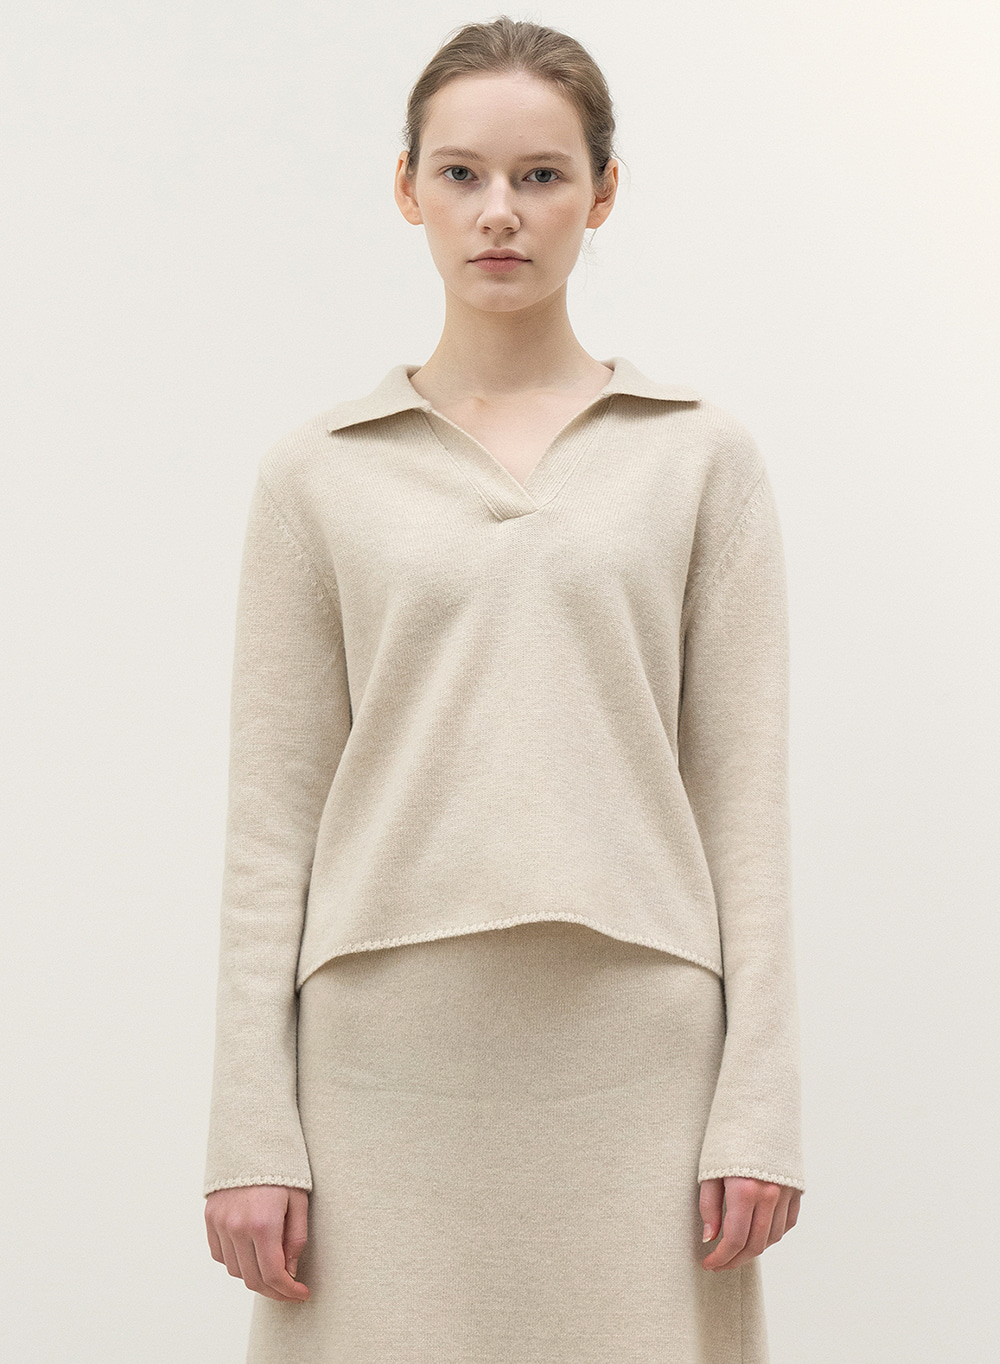 FW20 Polo Neck Knitted Sweater Natural